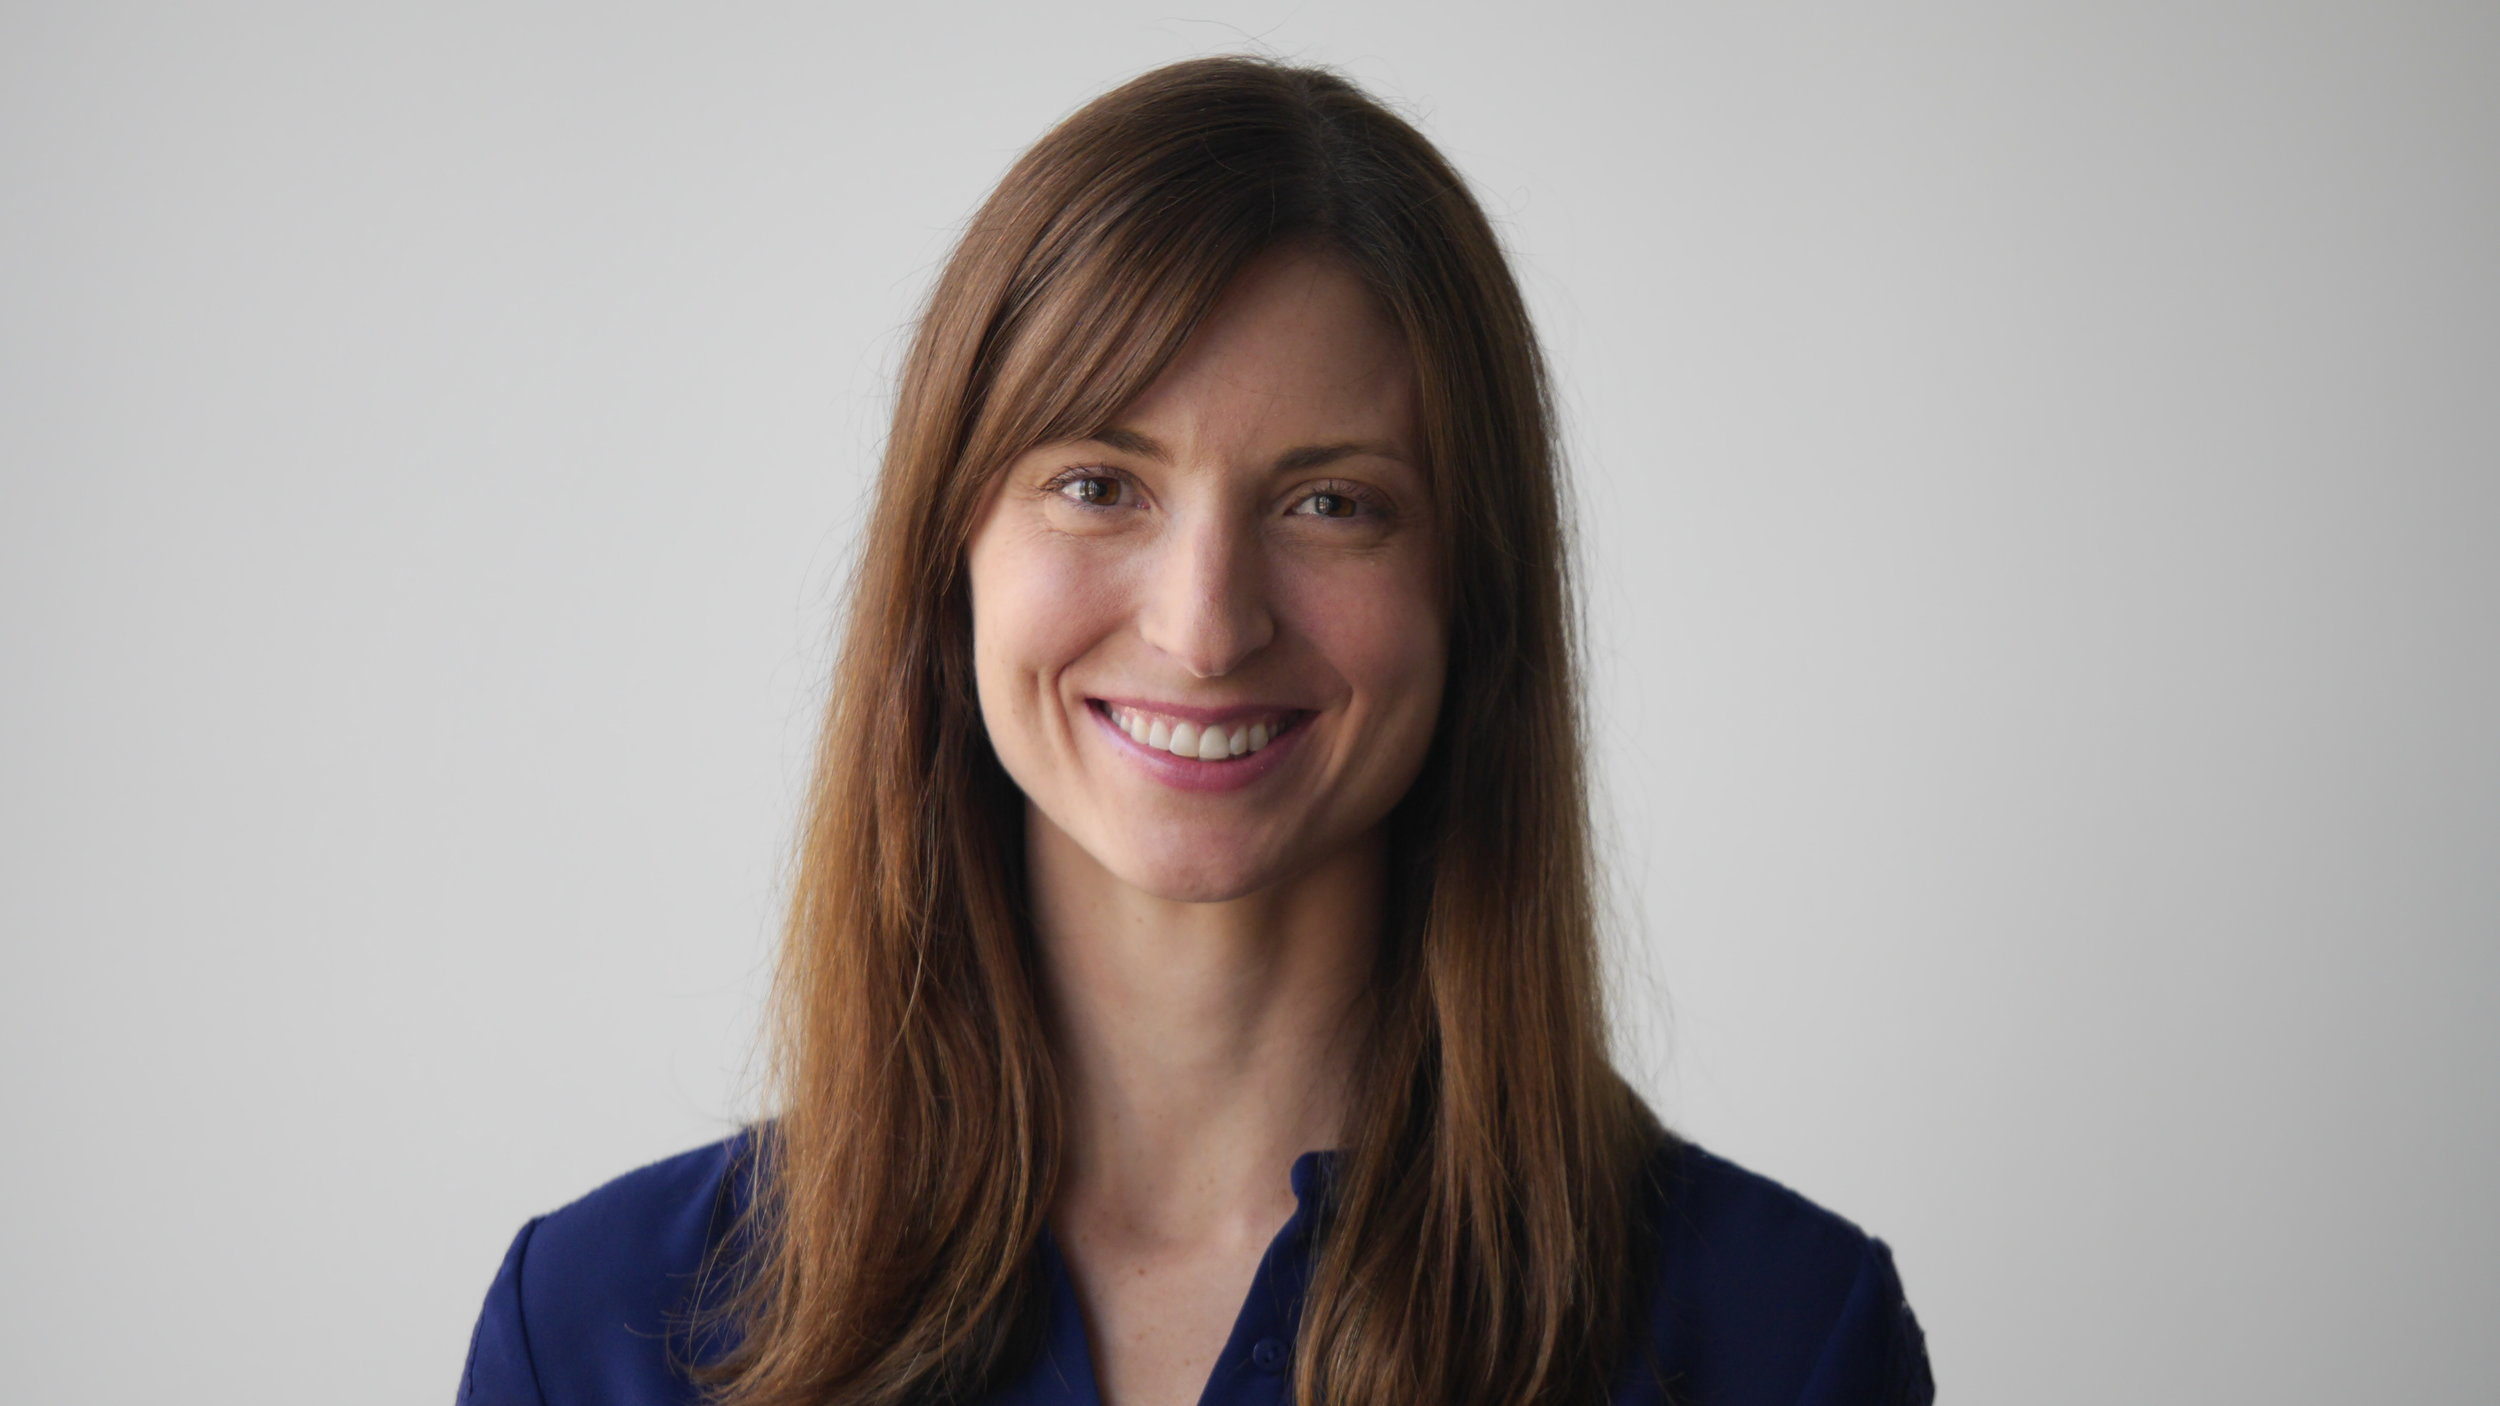 Emily Rasmussen - Founder & CEO, Amplifunds